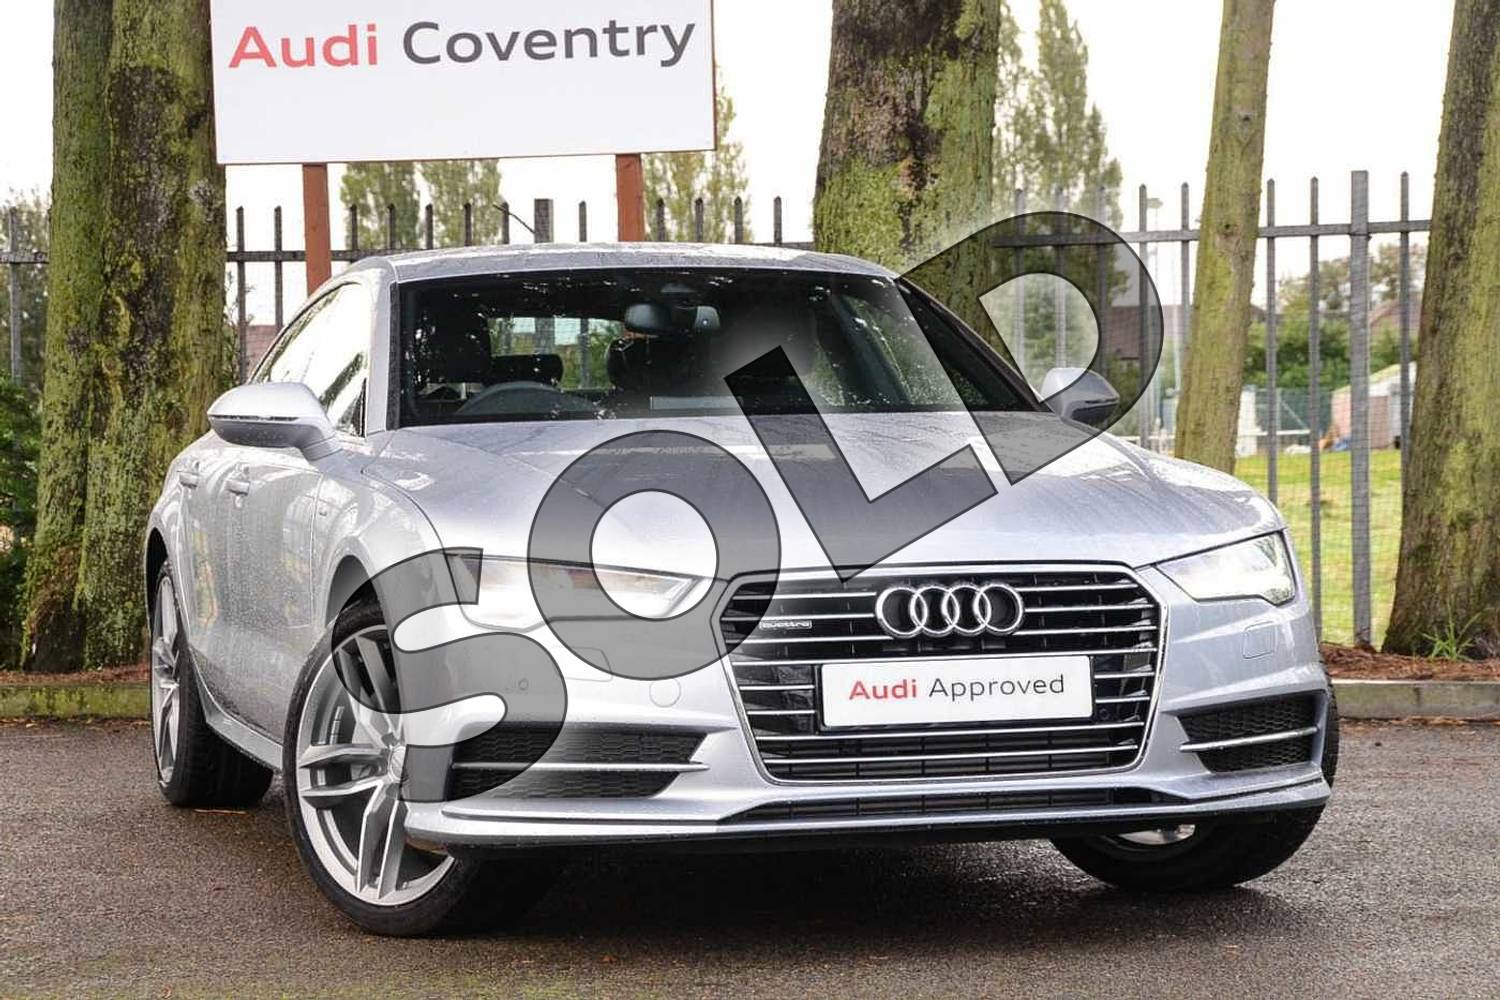 2019 Audi A7 Diesel Sportback 3.0 TDI Quattro 272 S Line 5dr S Tronic in Floret Silver Metallic at Coventry Audi